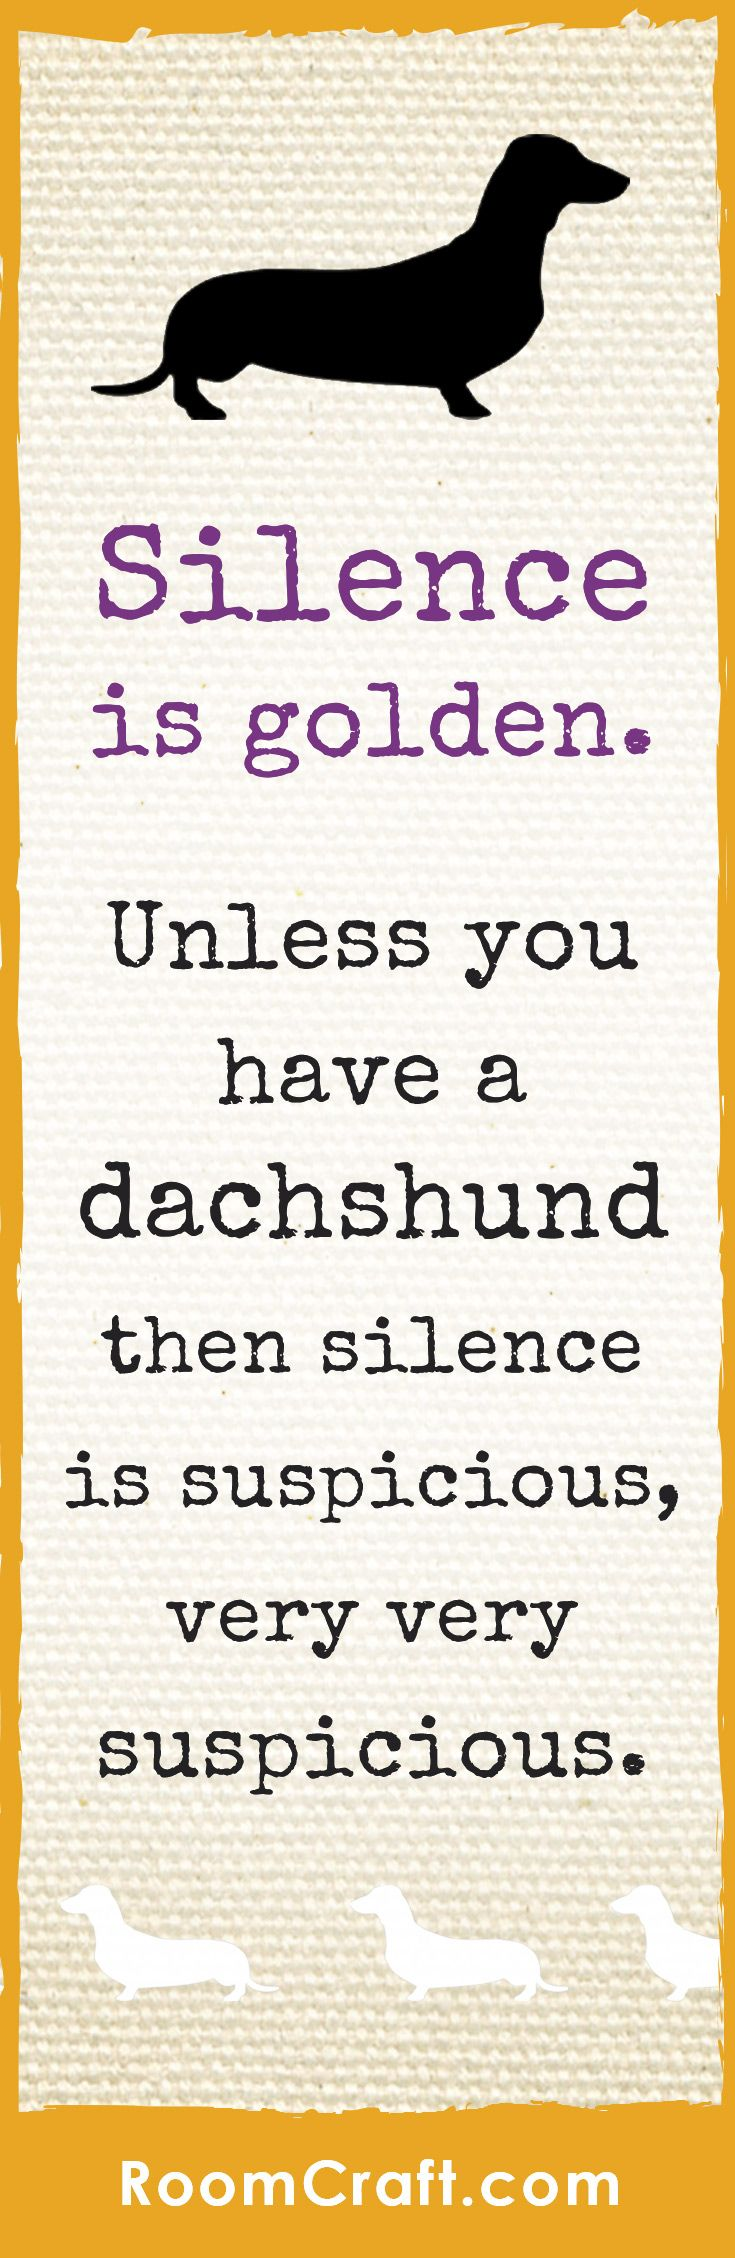 Silence is very suspicious when you have a dachshund, but you can't help loving those little mischievous sausage dogs. Roomcraft has this adorable dachshund design available on soft throw pillows and square wall canvases. They are perfect for any home, office or library. Save this to your inspiration board or click to find your favorite set now. They make decorating fun and easy! #roomcraft